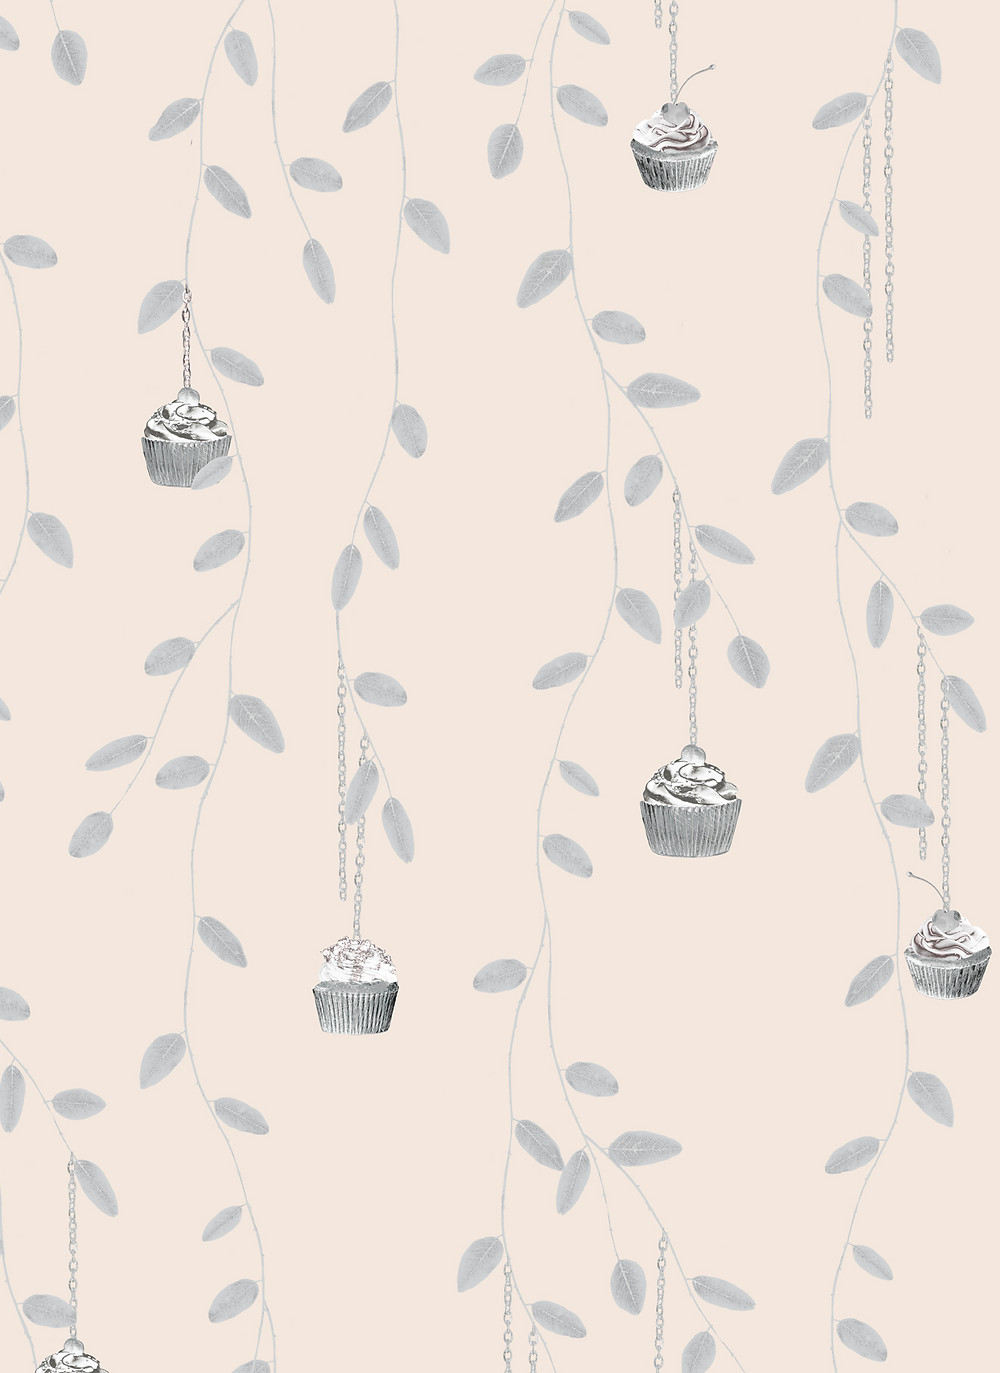 powder interior styling, wallpaper pattern with leaves and cupcakes